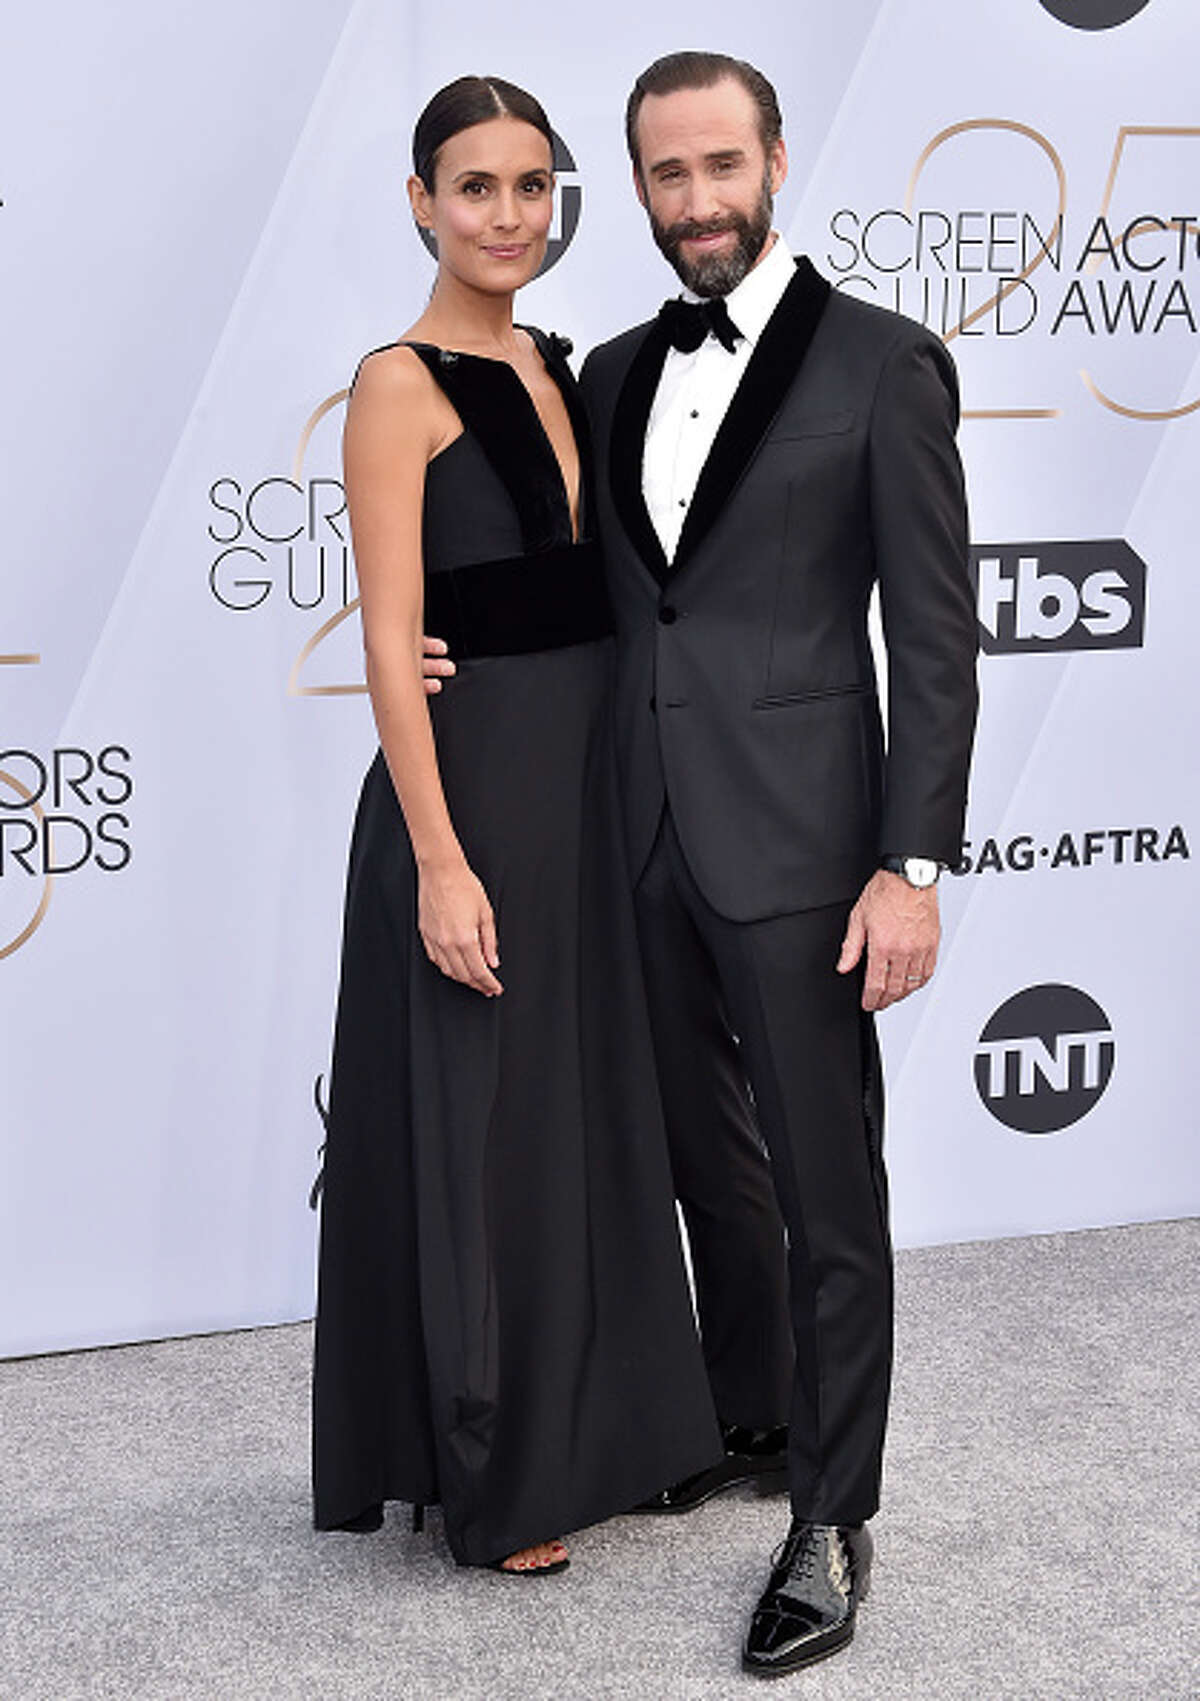 LOS ANGELES, CA - JANUARY 27: Maria Dolores Dieguez (L) and Joseph Fiennes attend the 25th Annual Screen Actors Guild Awards at The Shrine Auditorium on January 27, 2019 in Los Angeles, California. (Photo by Axelle/Bauer-Griffin/FilmMagic)